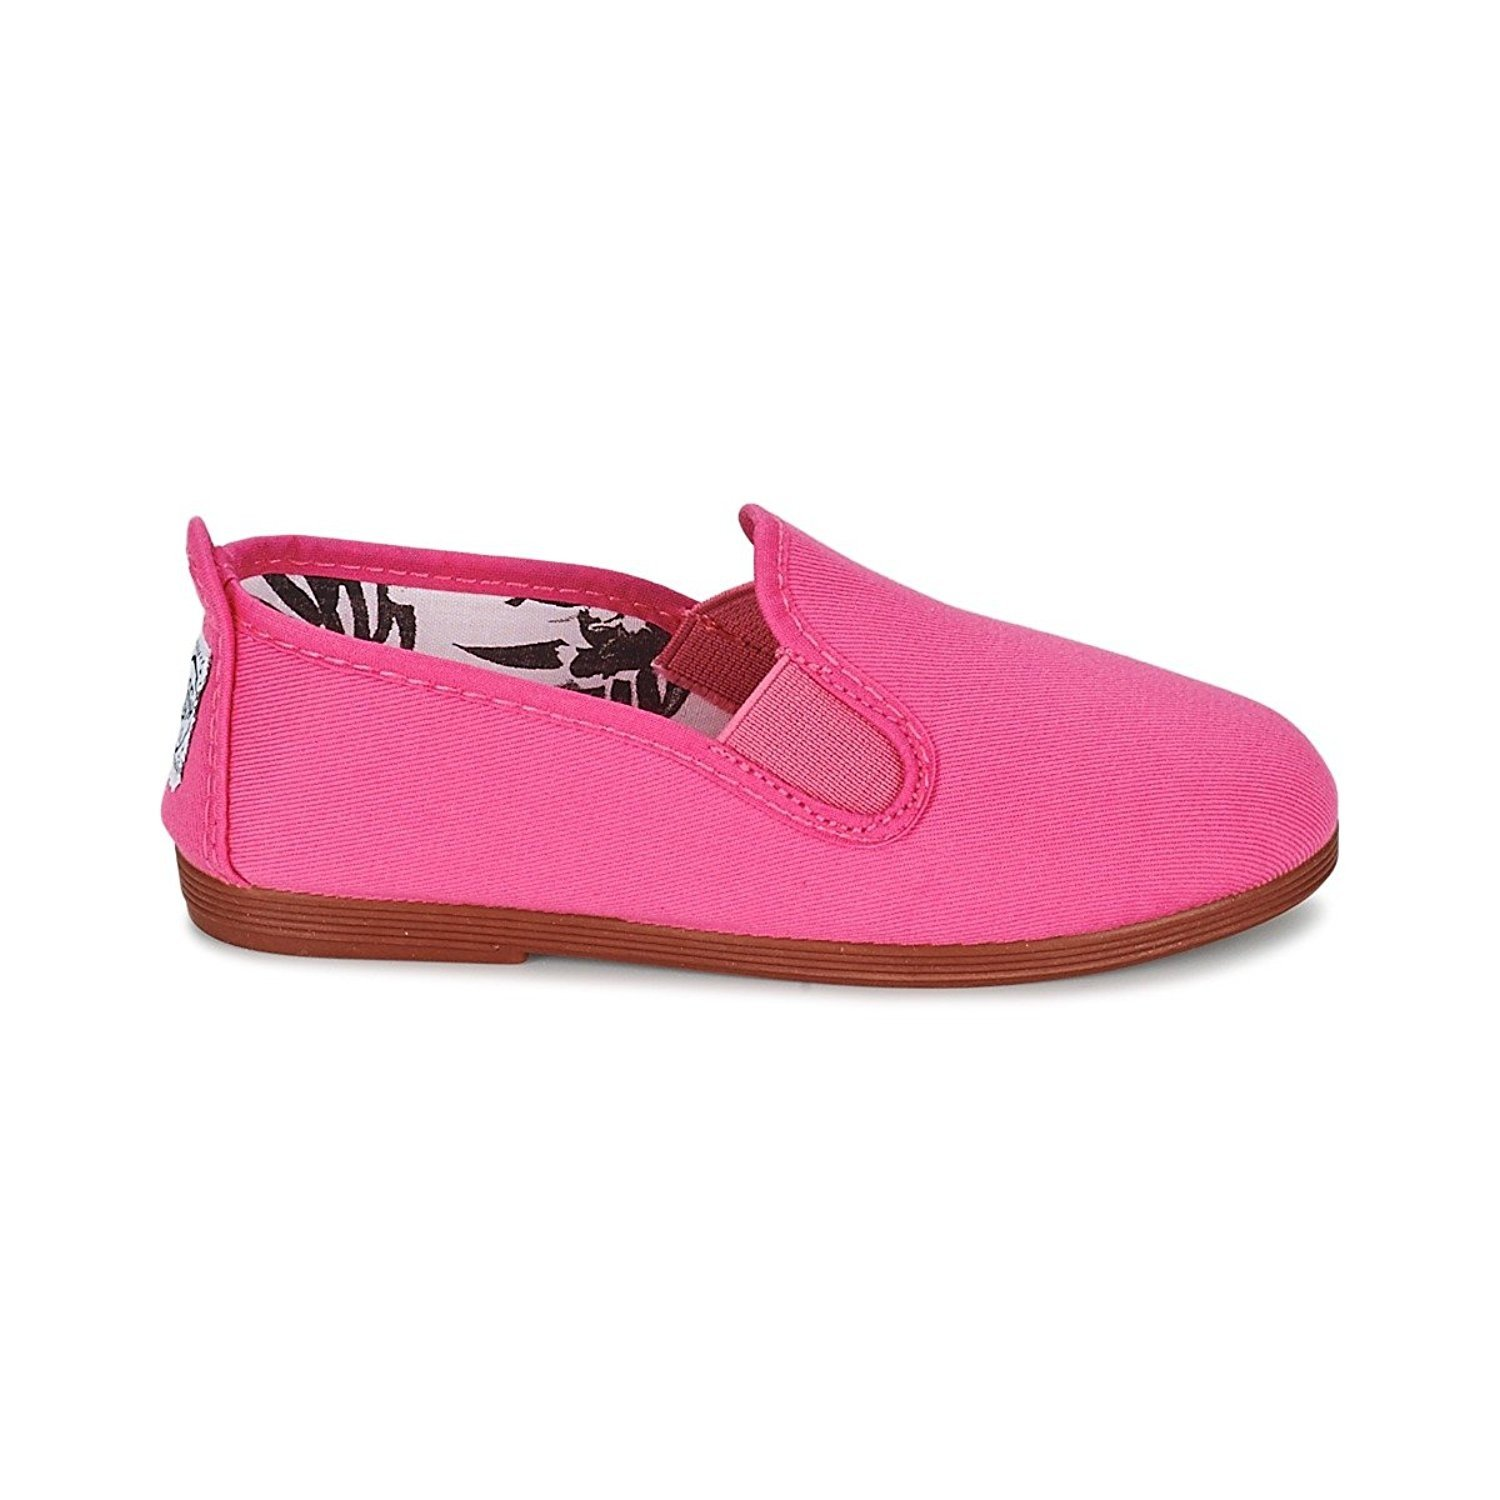 Flossy Kid de Navarre à enfiler Toile Chaussures, Rose Fuchsia